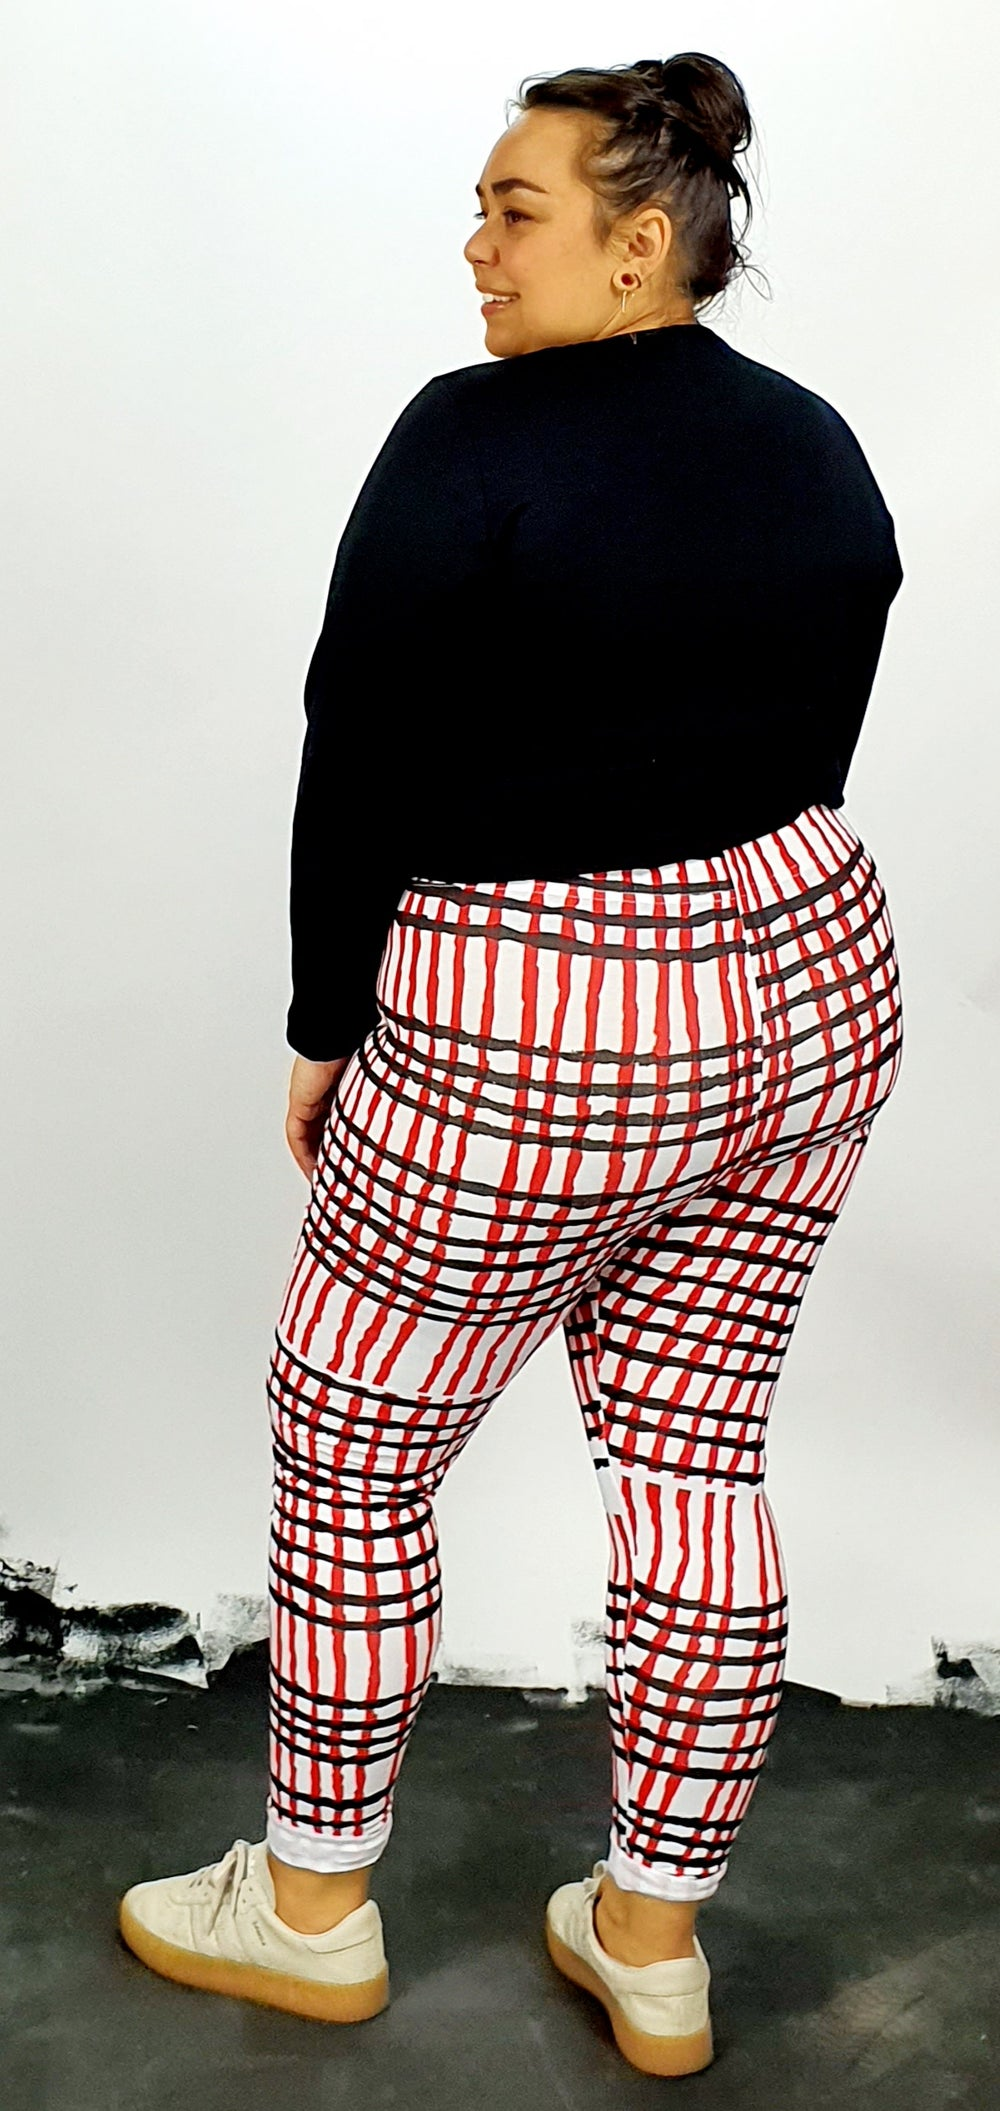 Black and red print on white cotton lycra leggings